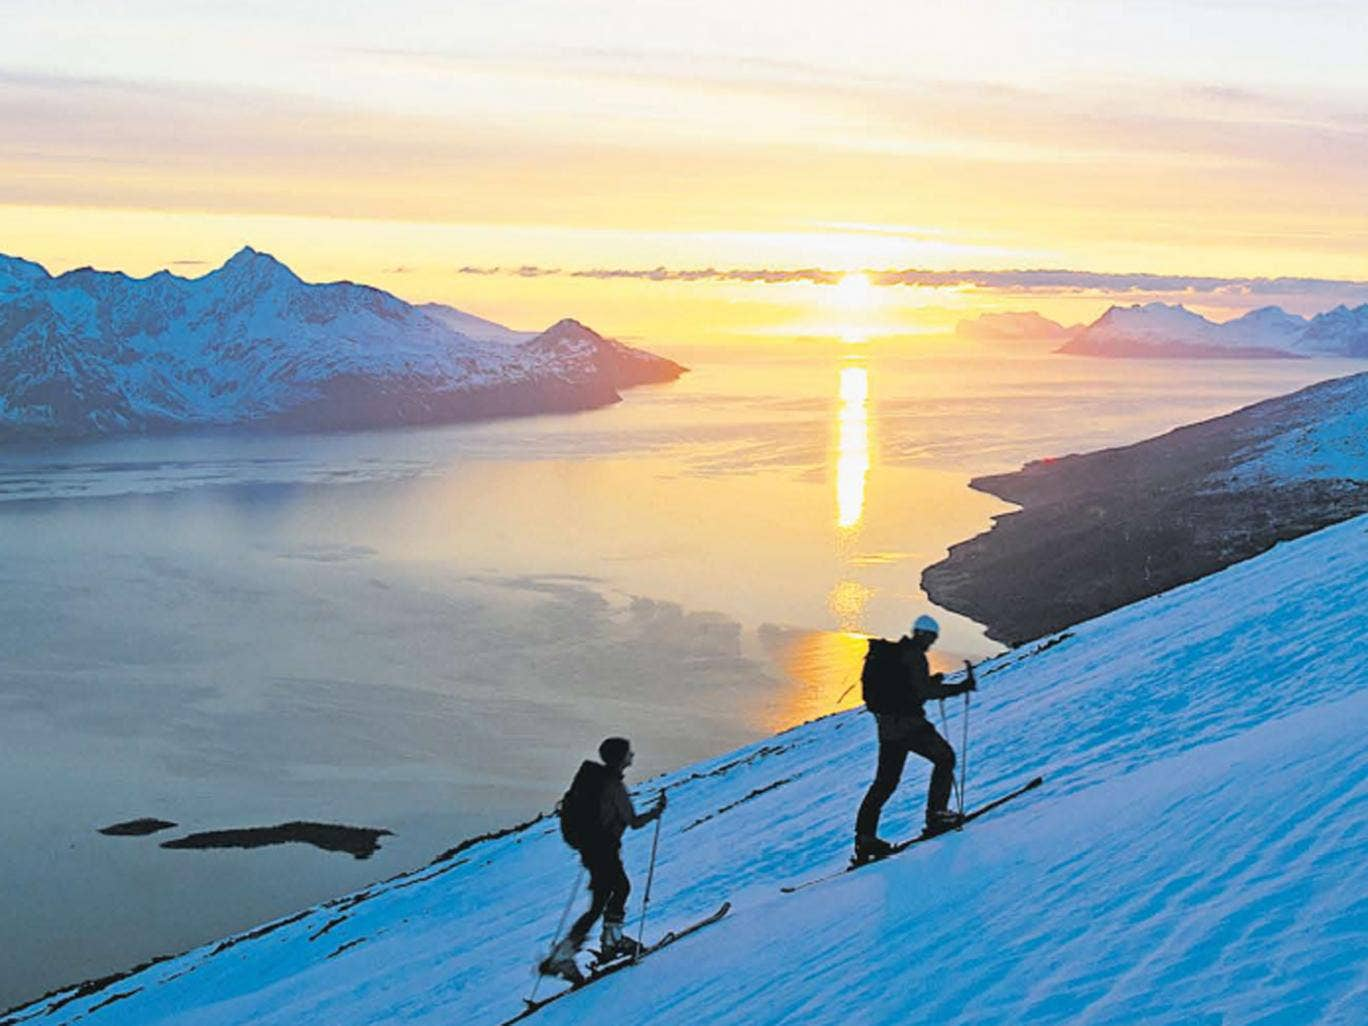 Up and away: Skiing close to Norway's fjords